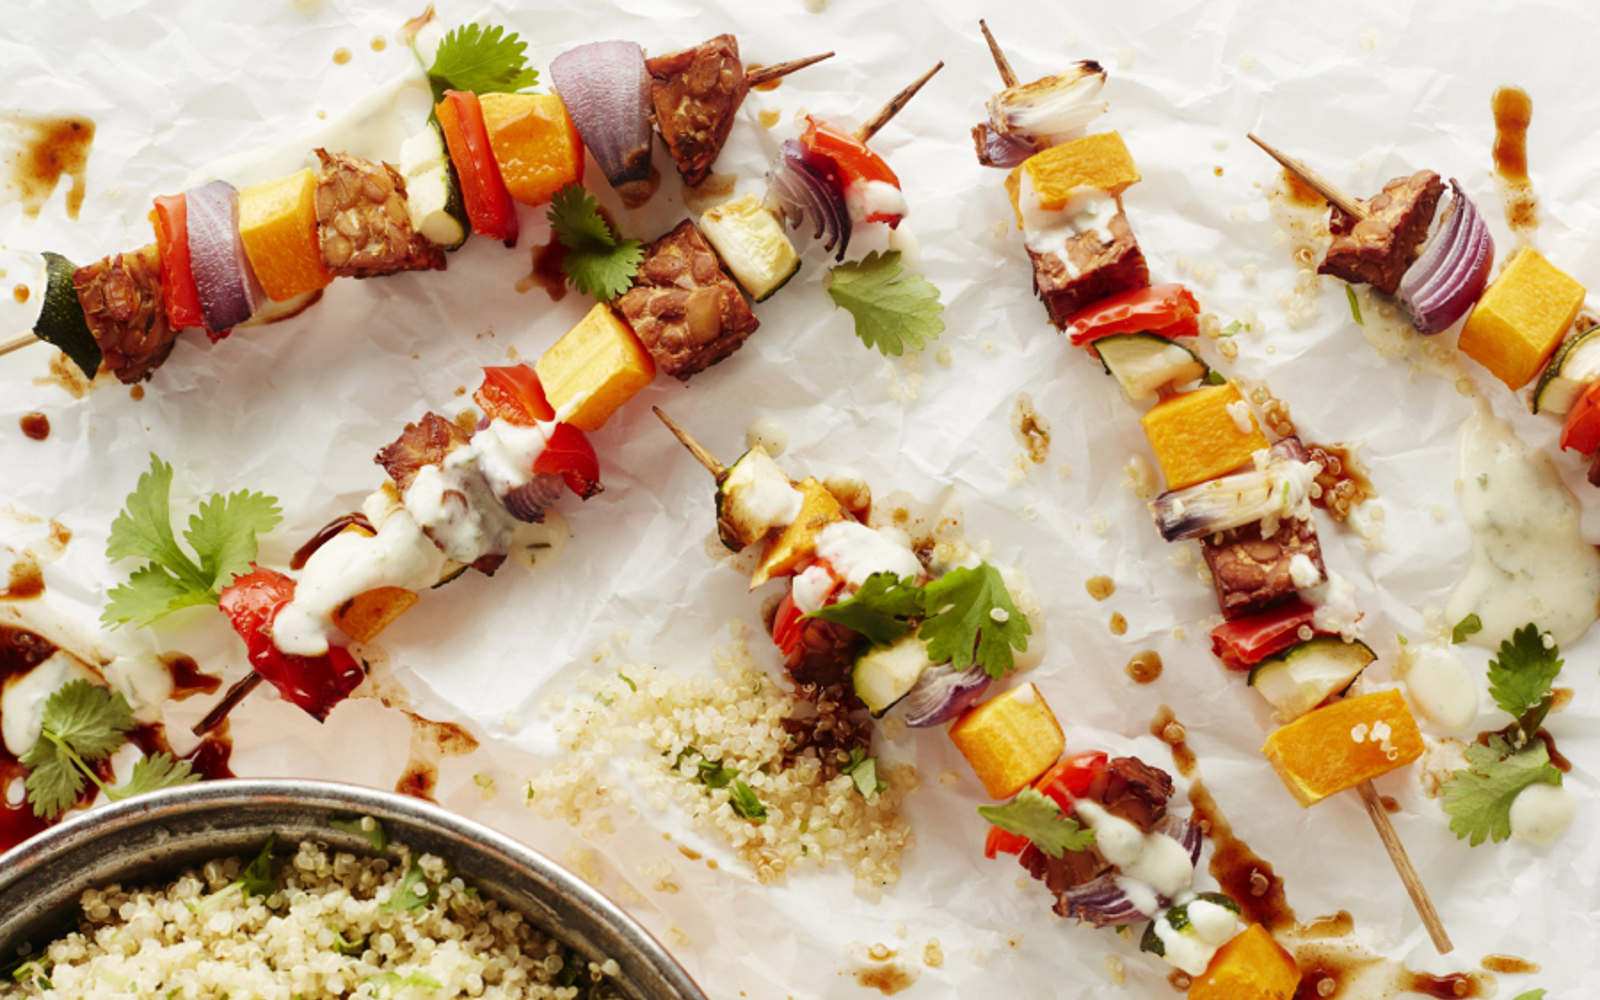 Grilled Vegetable Skewers With Mexican Quinoa